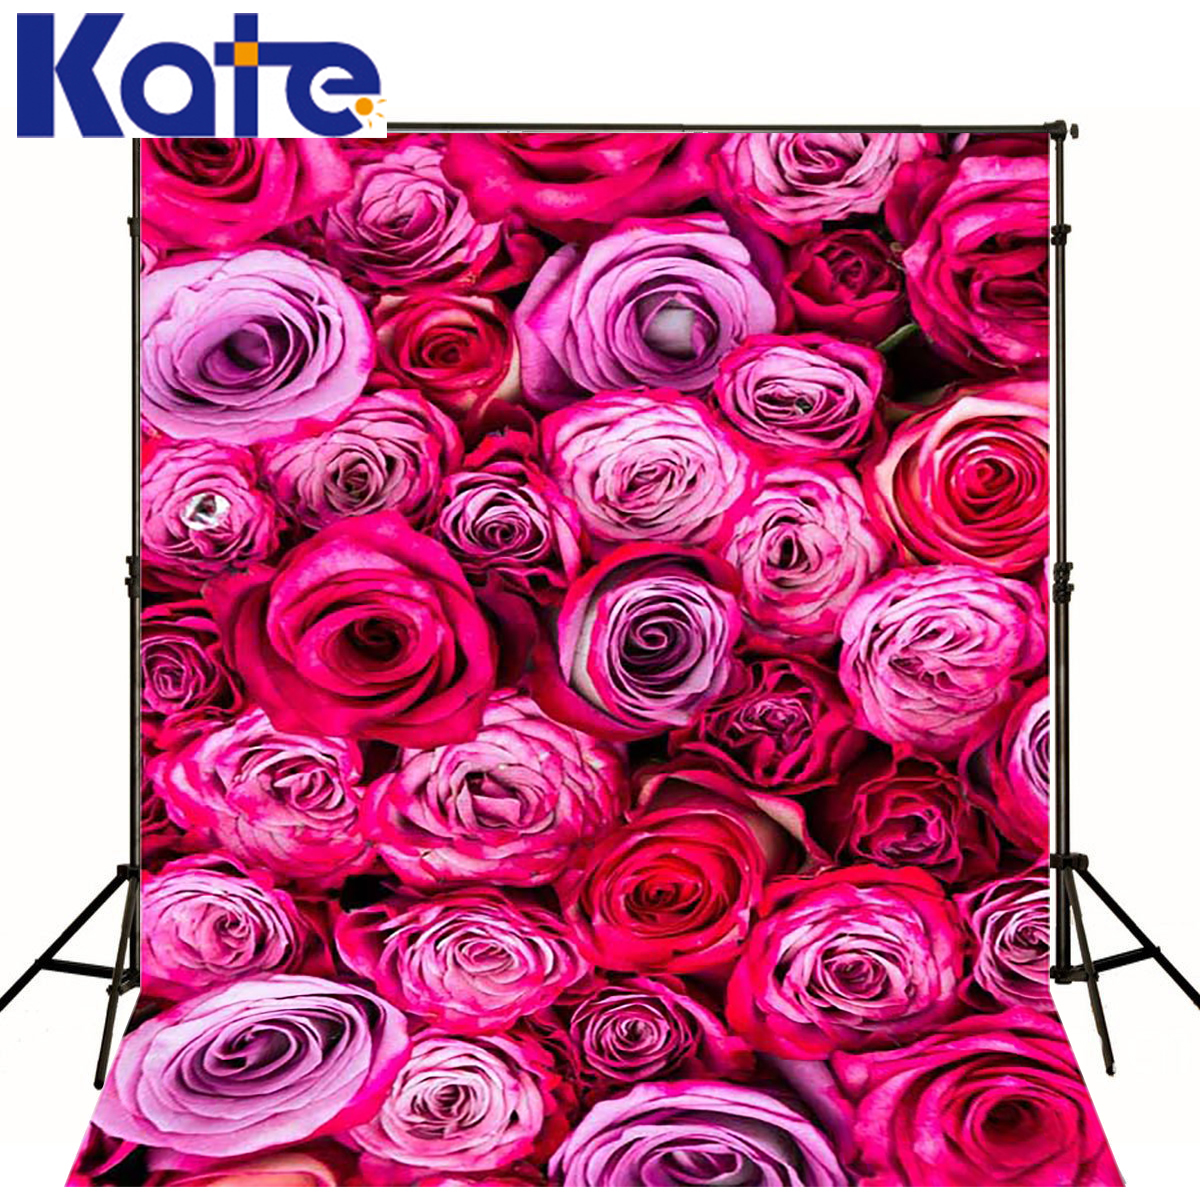 Kate 5*7ft Photography Studio Backgrounds Photo Backdrops fotografia Rose Marine Newborn Photography Backdrops Princess backdrop<br>